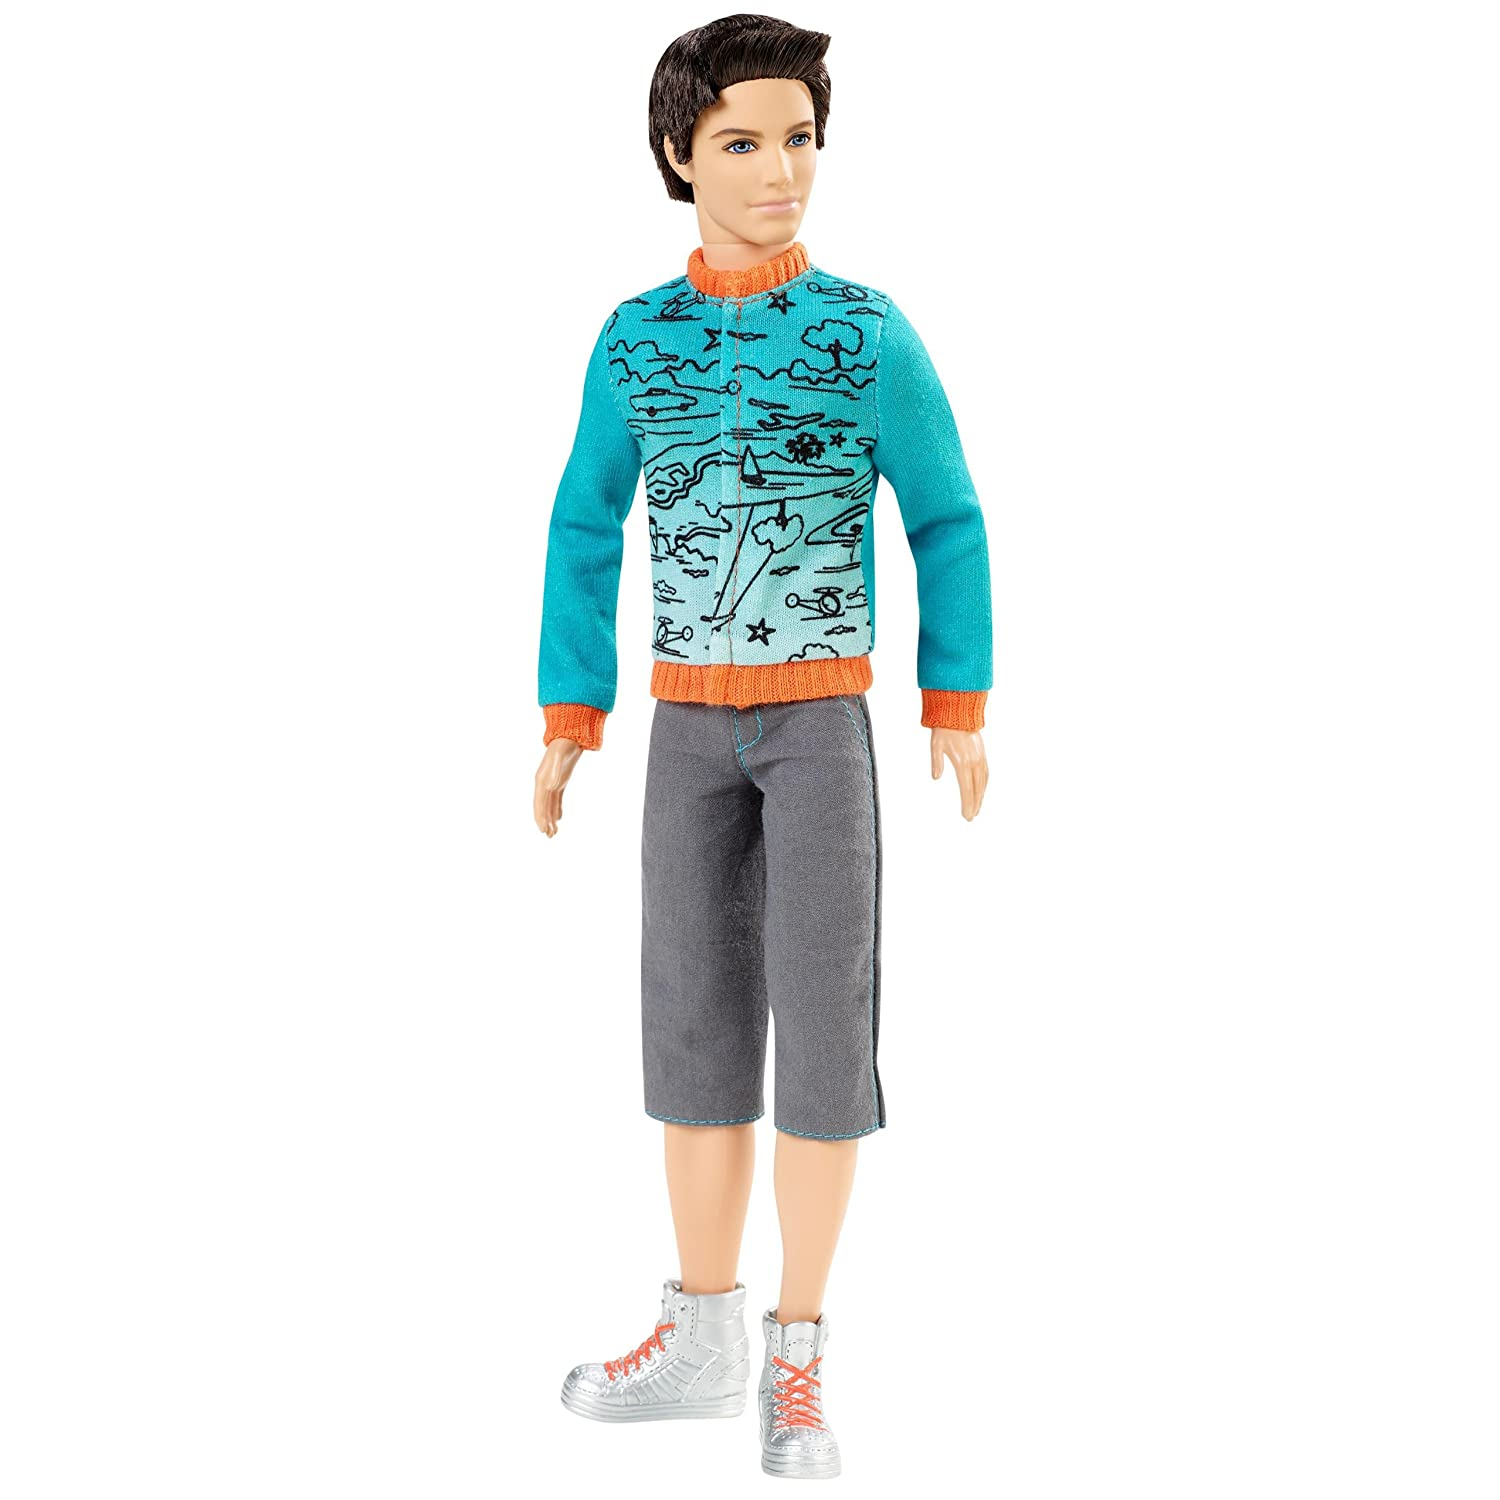 Ken Fashionista Barbie Fashionistas Ken Doll